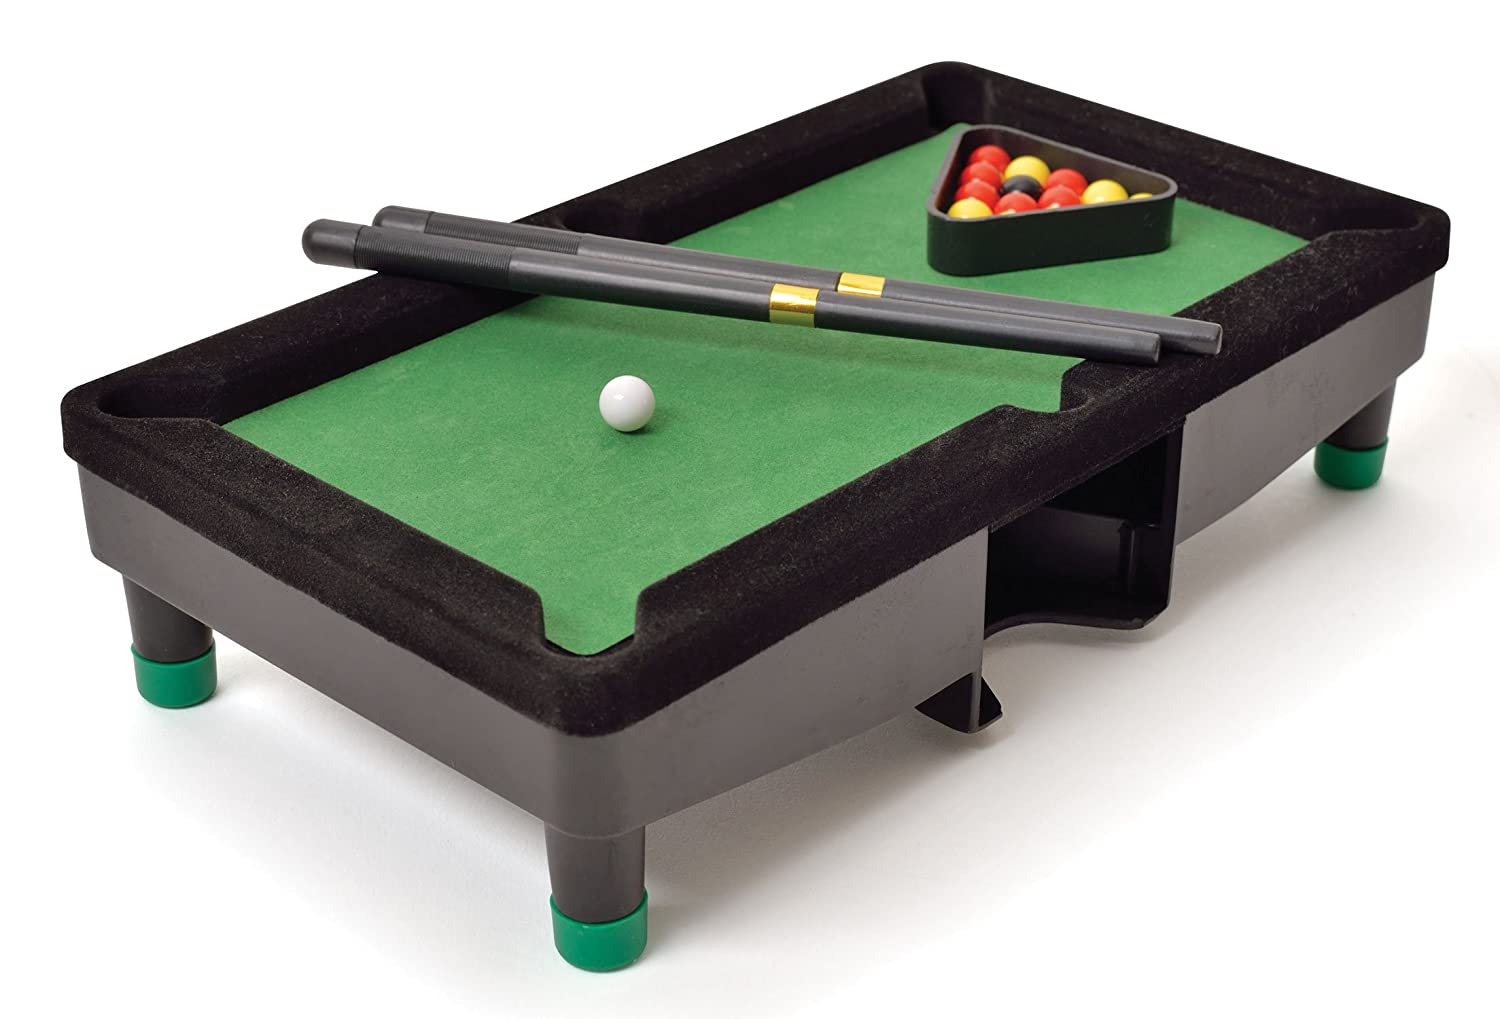 Cool Perfect Life Ideas Desktop Miniature Pool Table Set With Mini Pool Balls Cue Sticks Accessories Tabletop Toy Gaming For Men Women Play Billiards Home Interior And Landscaping Spoatsignezvosmurscom